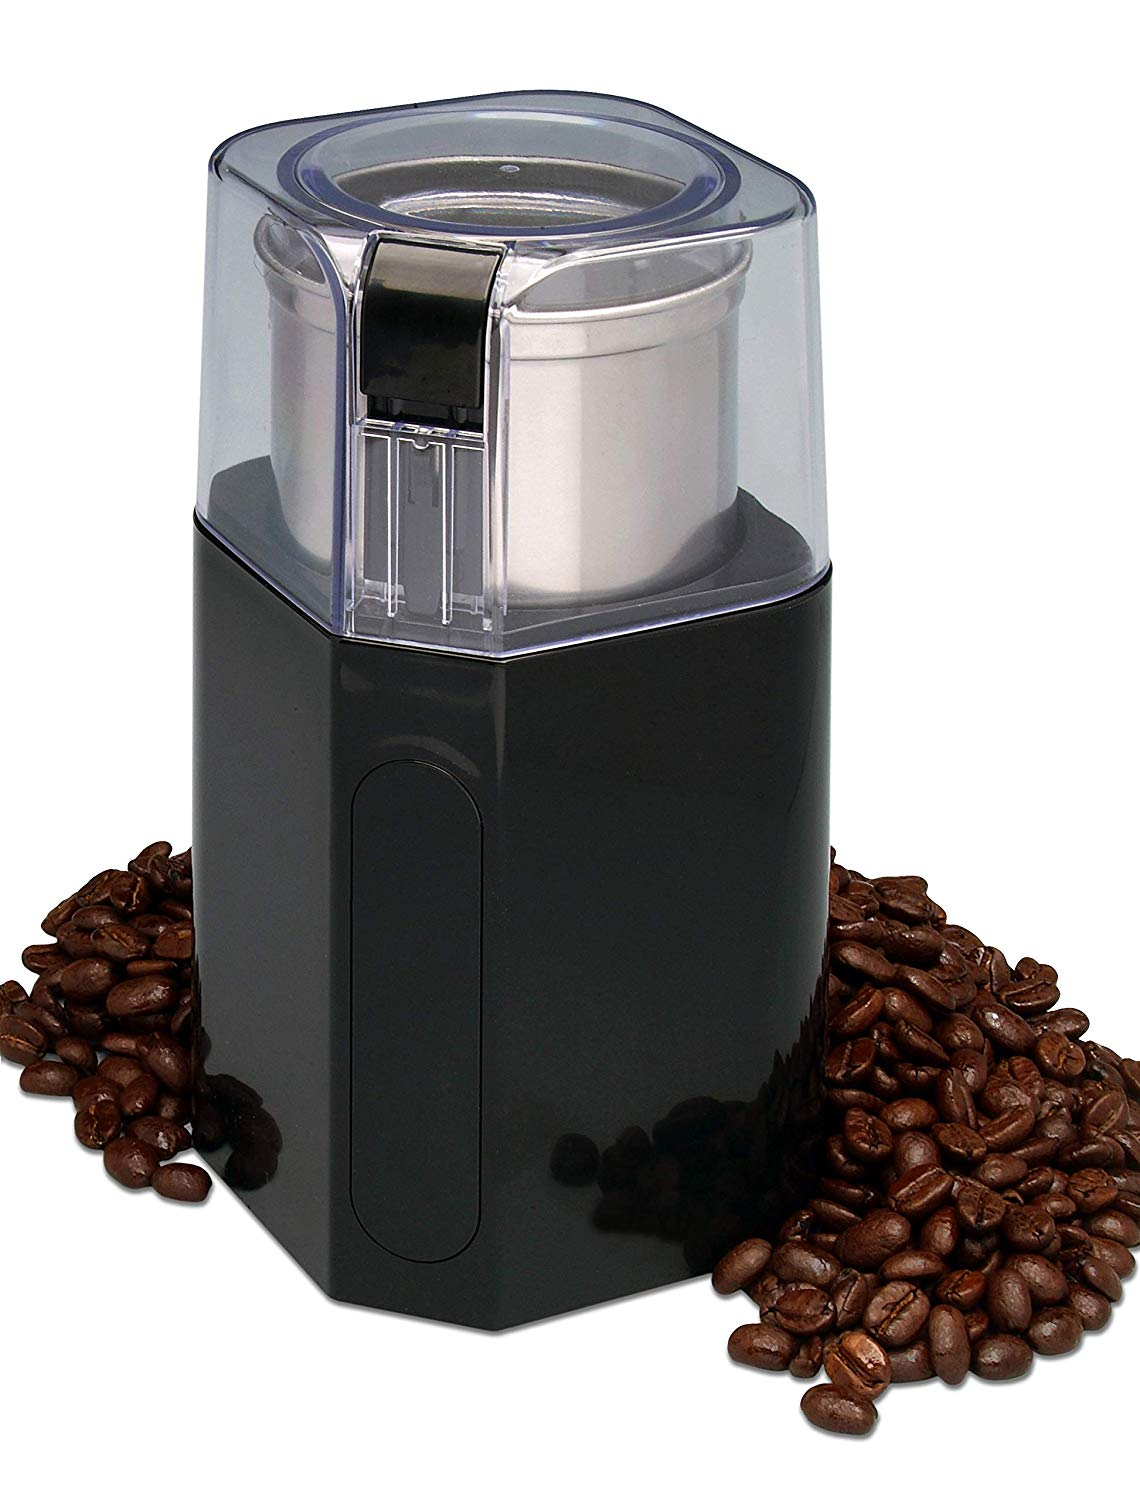 Epica electric coffee & spice grinder